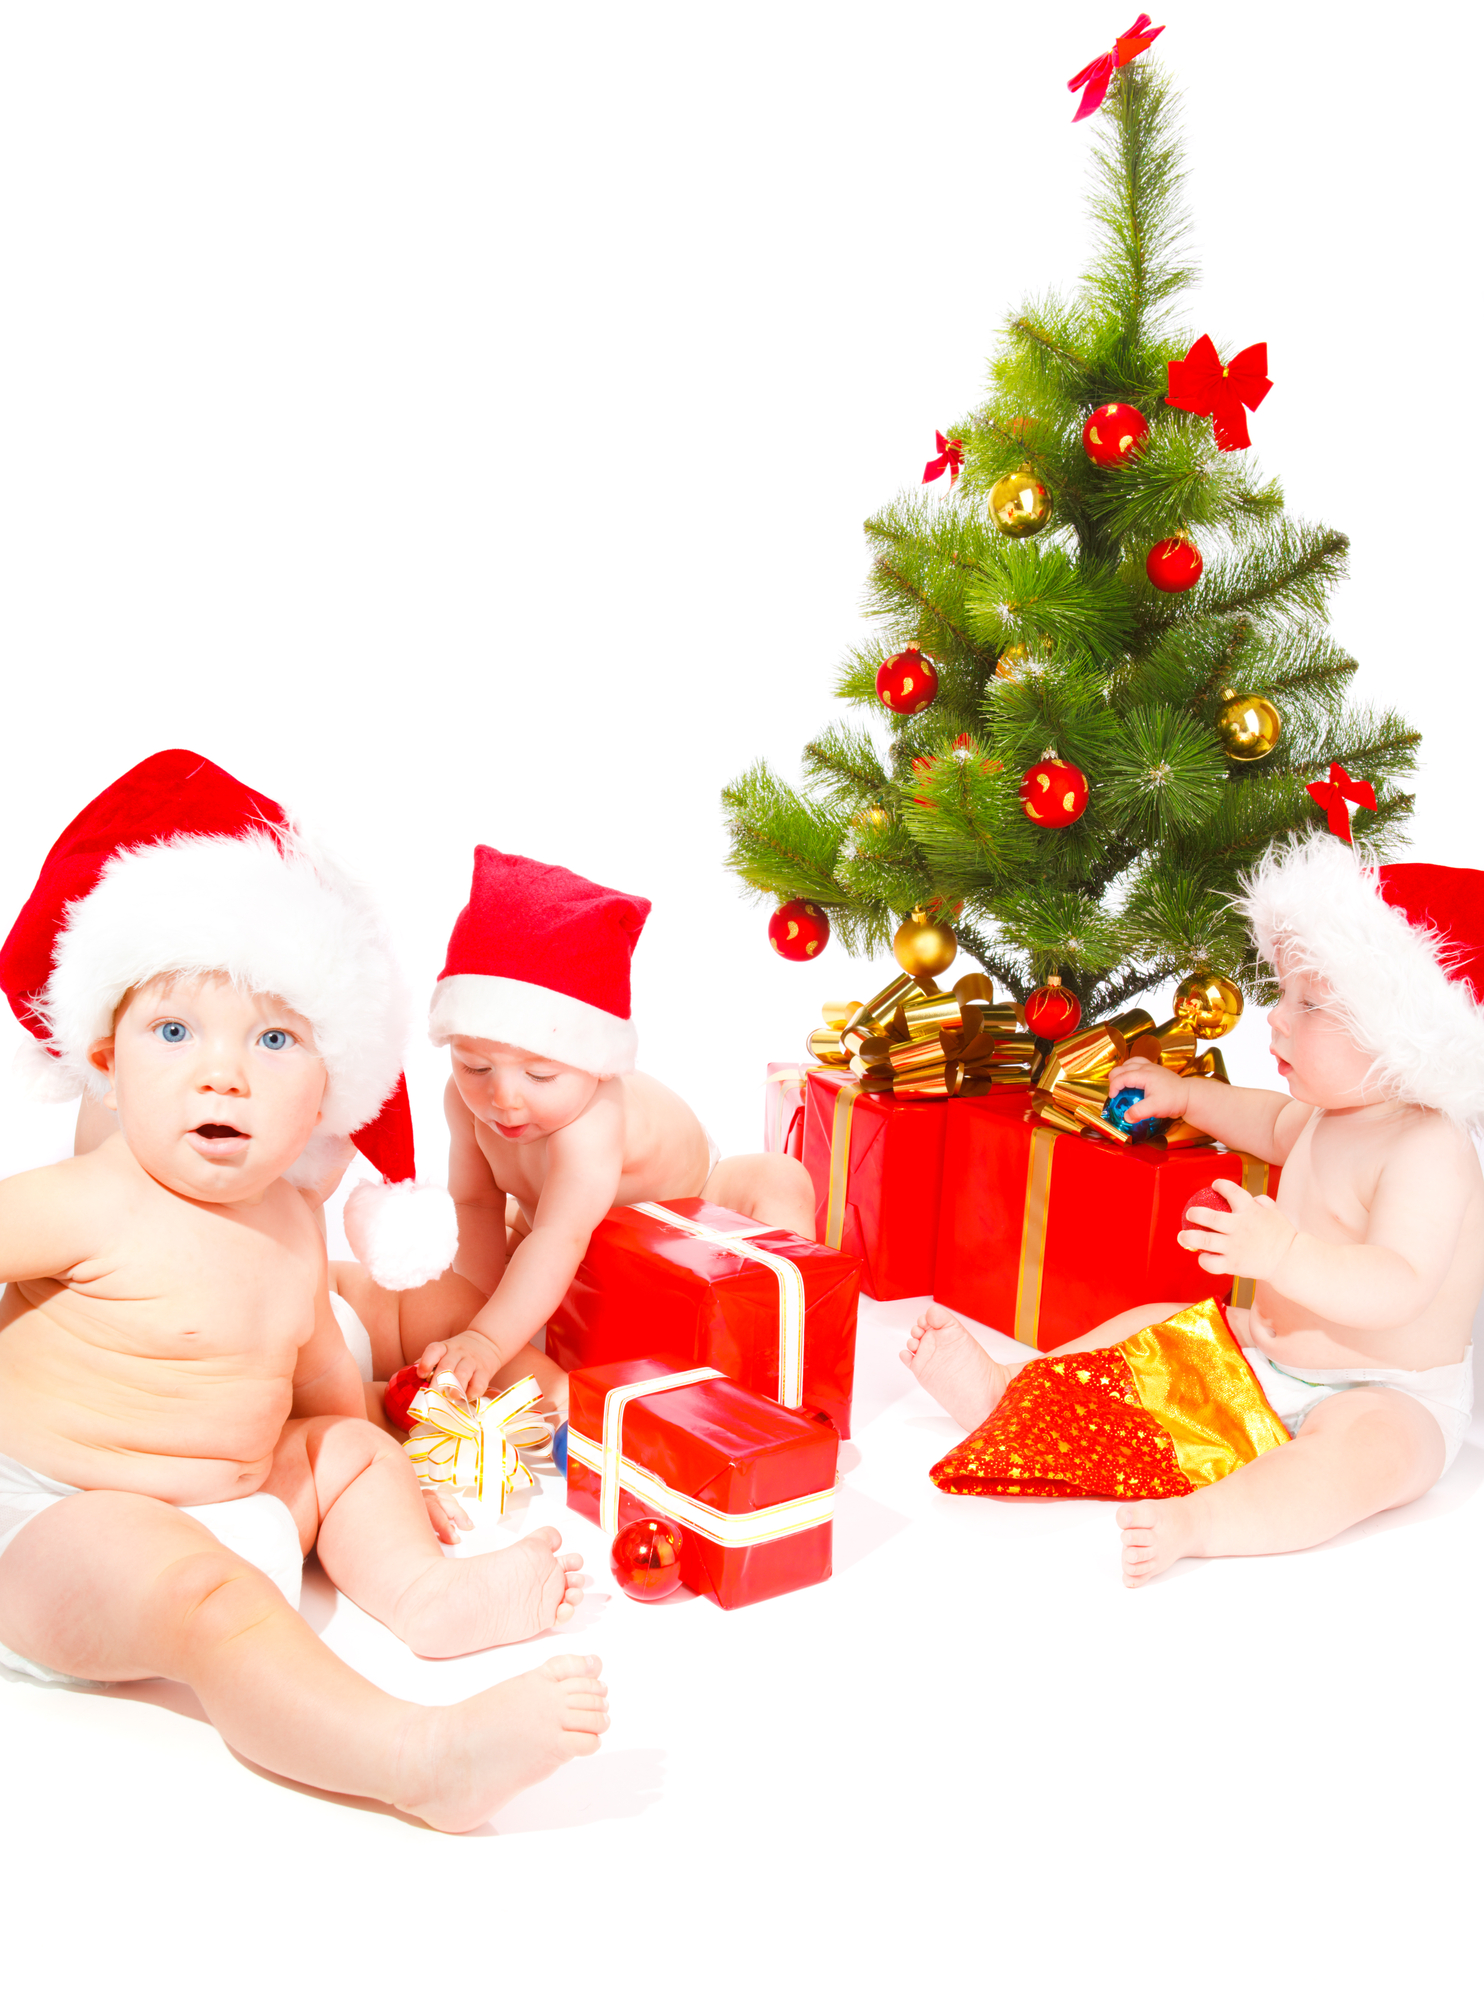 Babies with Christmas decorations